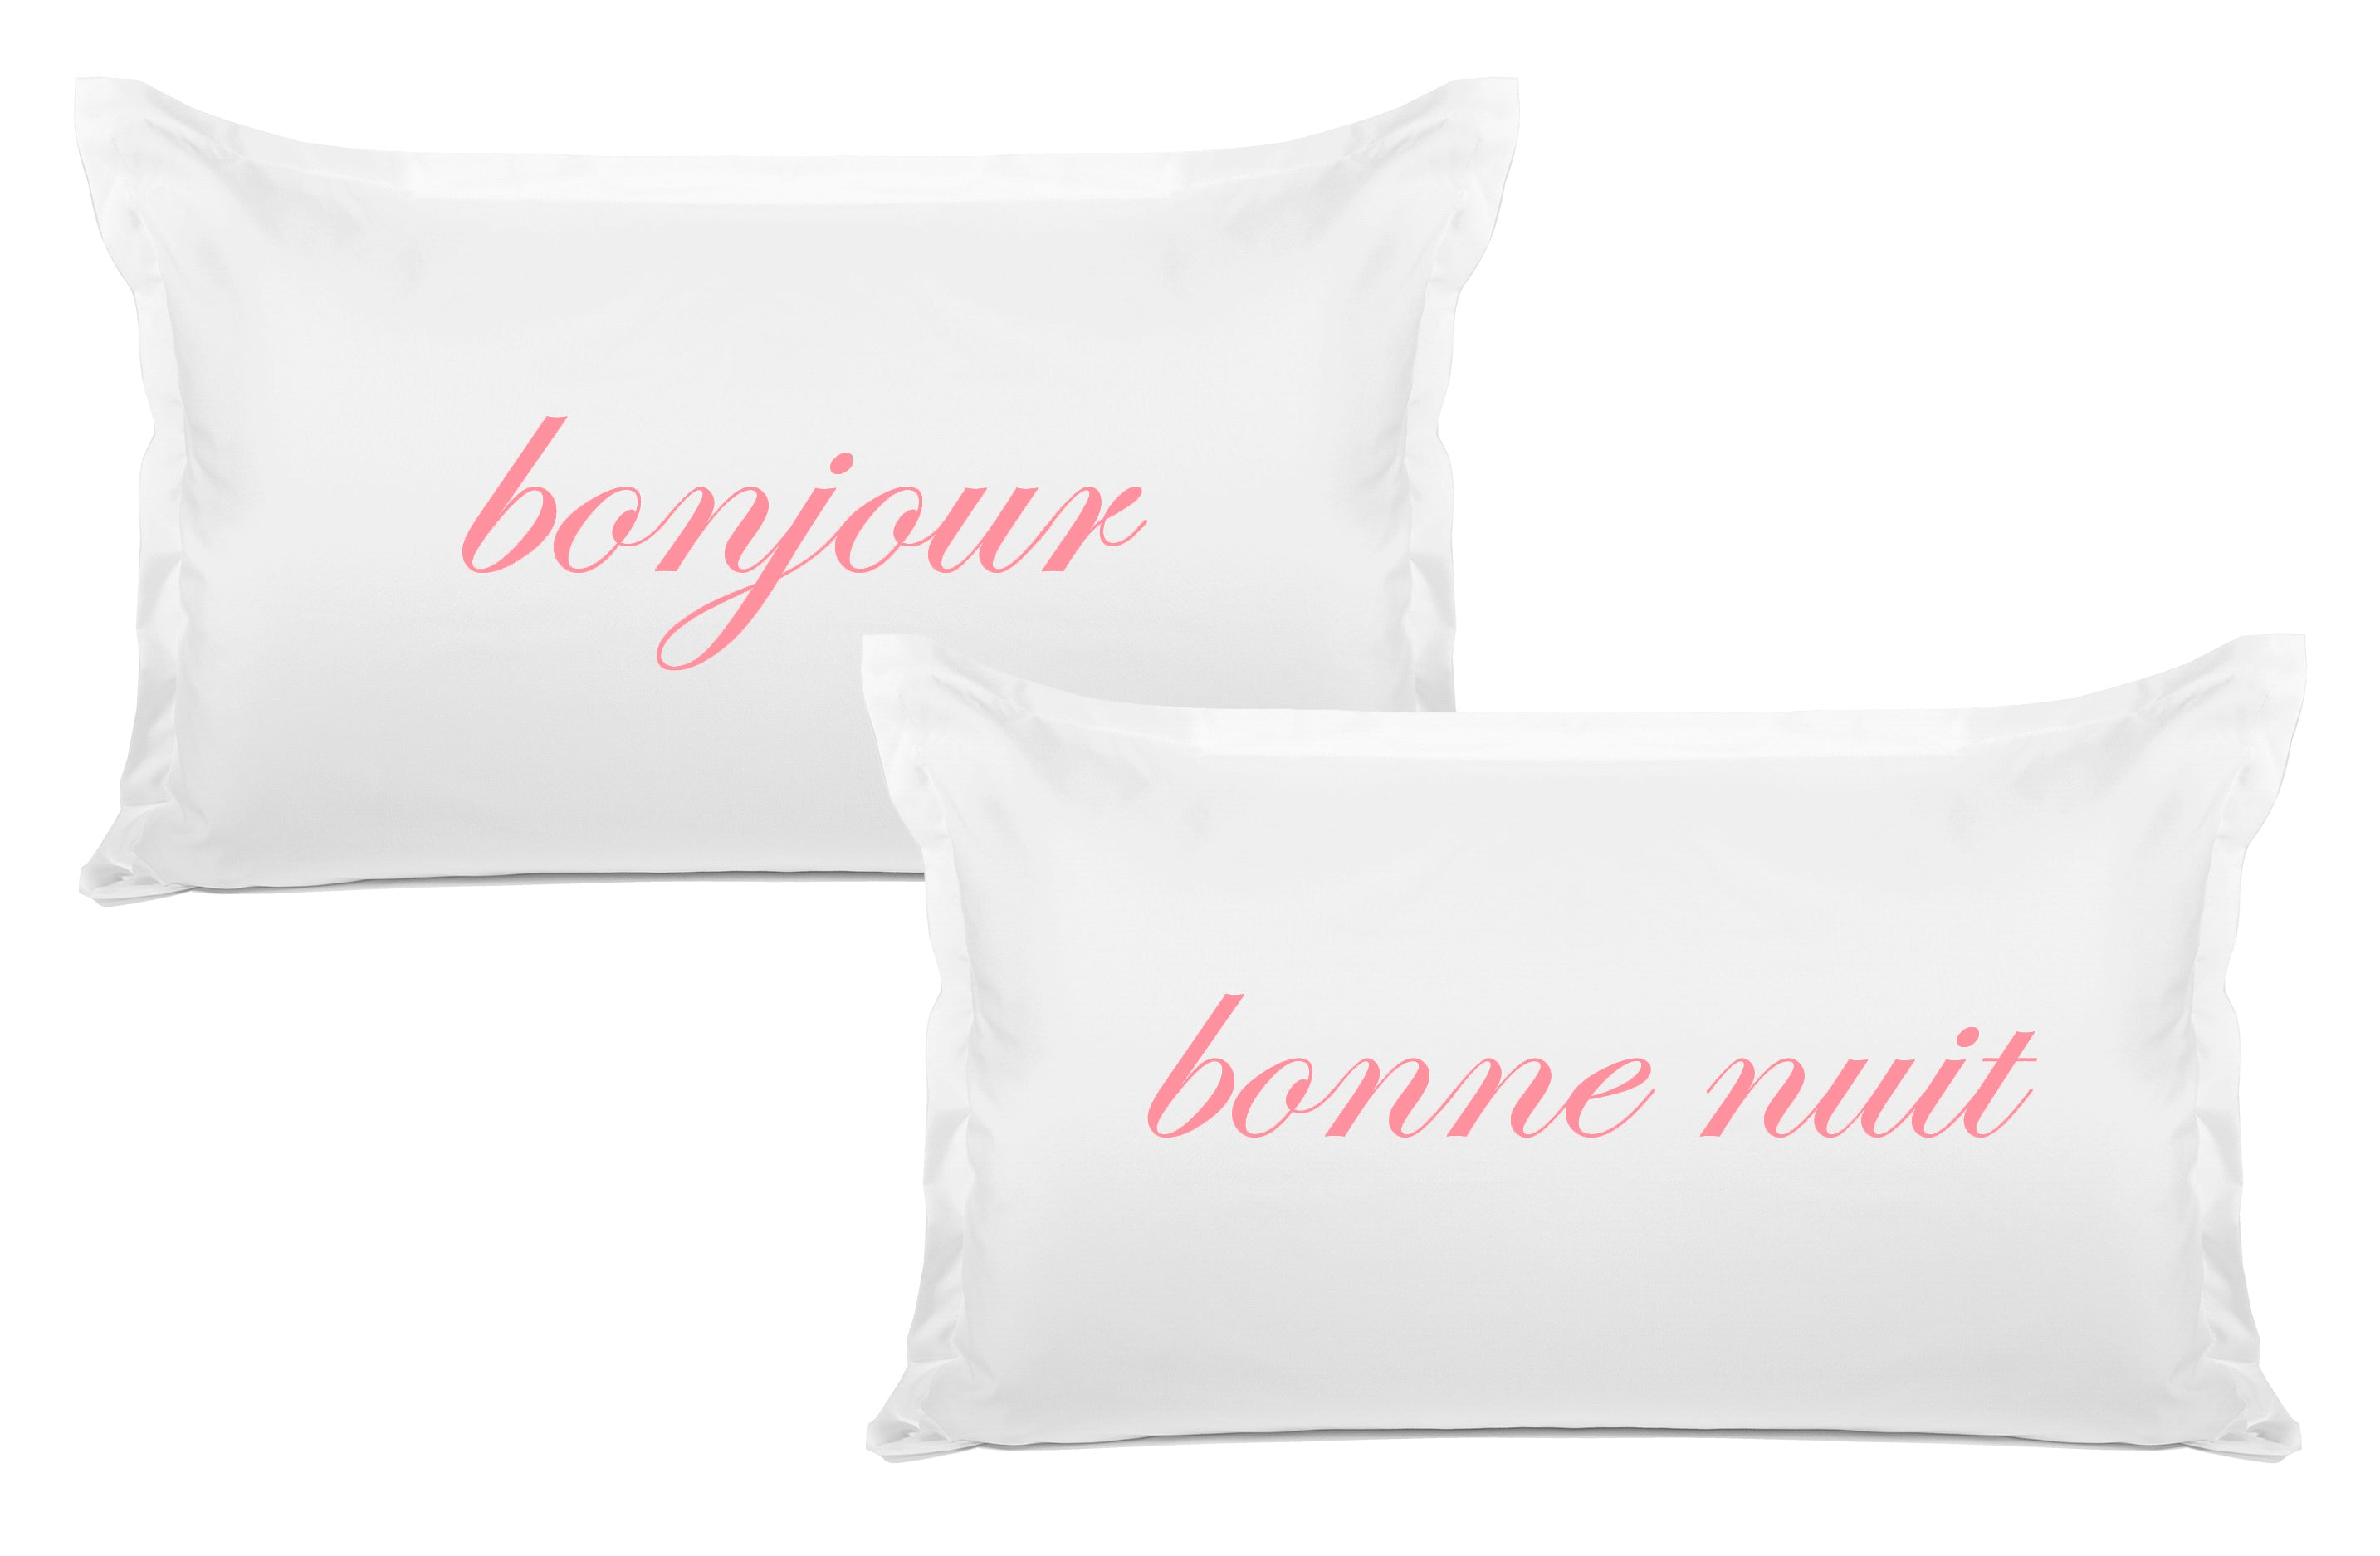 Bonjour Bonne Nuit pillow set Di Lewis bedroom decor